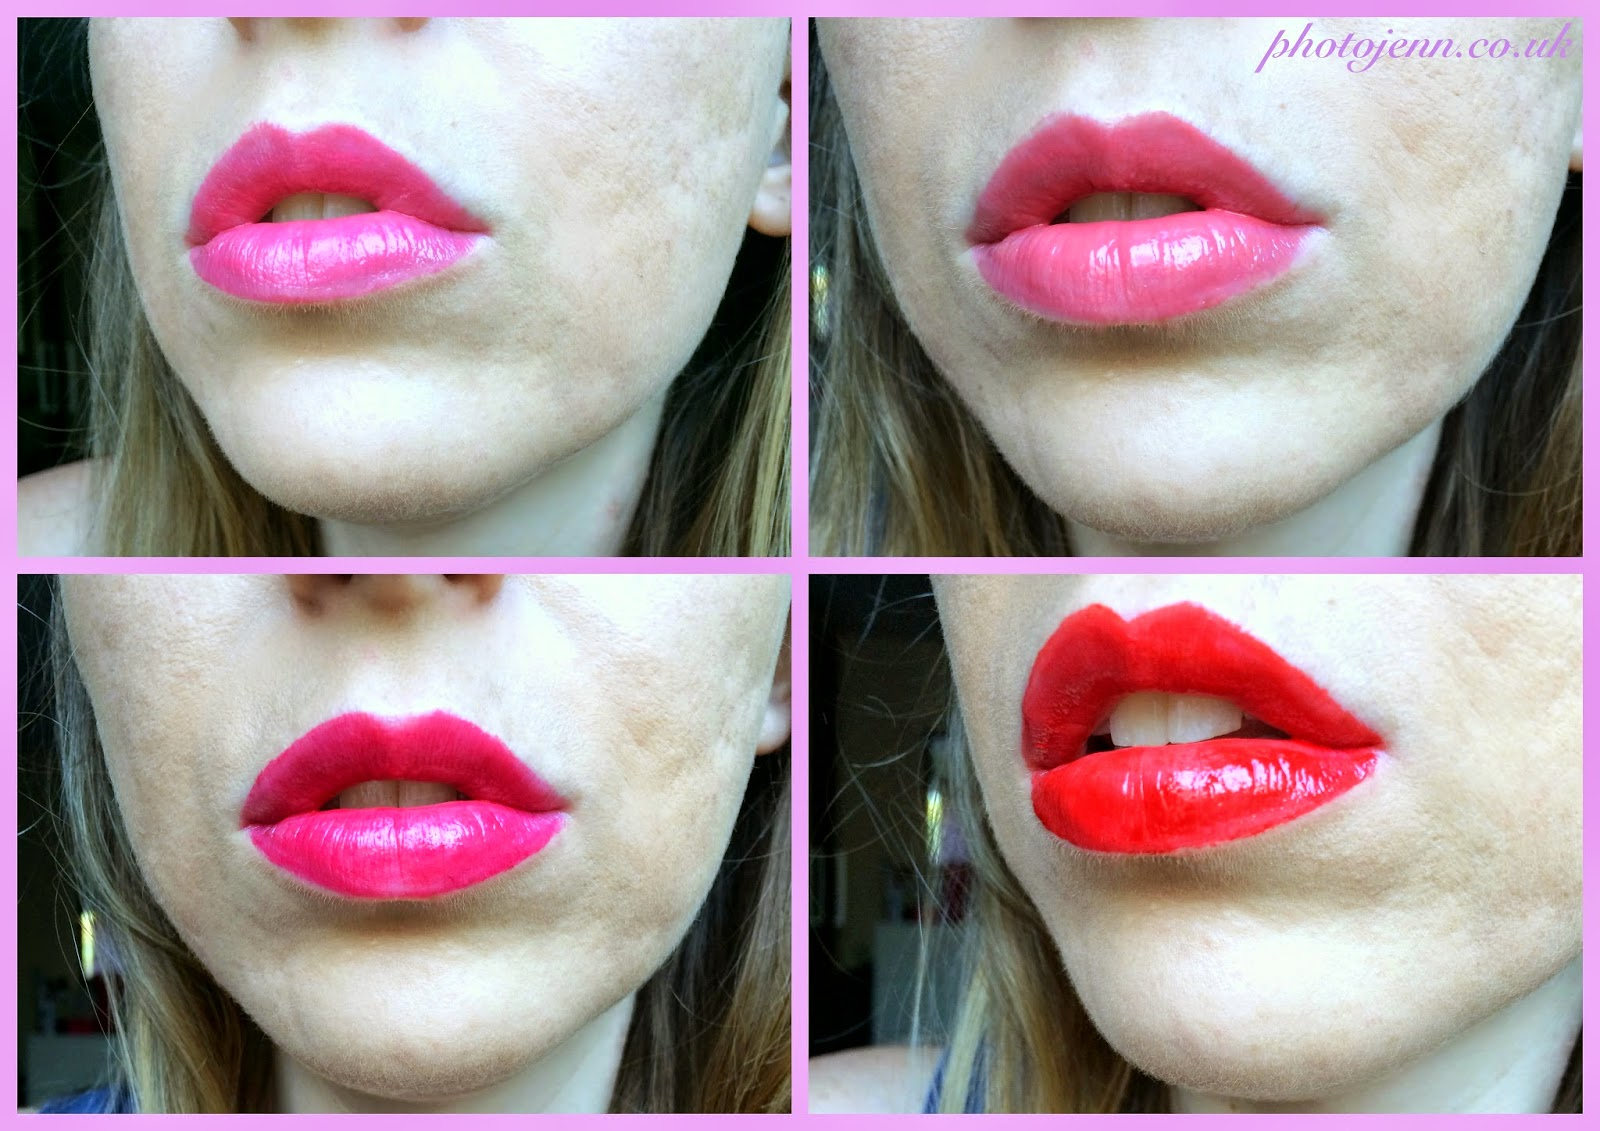 bourjois-new-aqua-laque-rouge-edition-on-lips-swatches